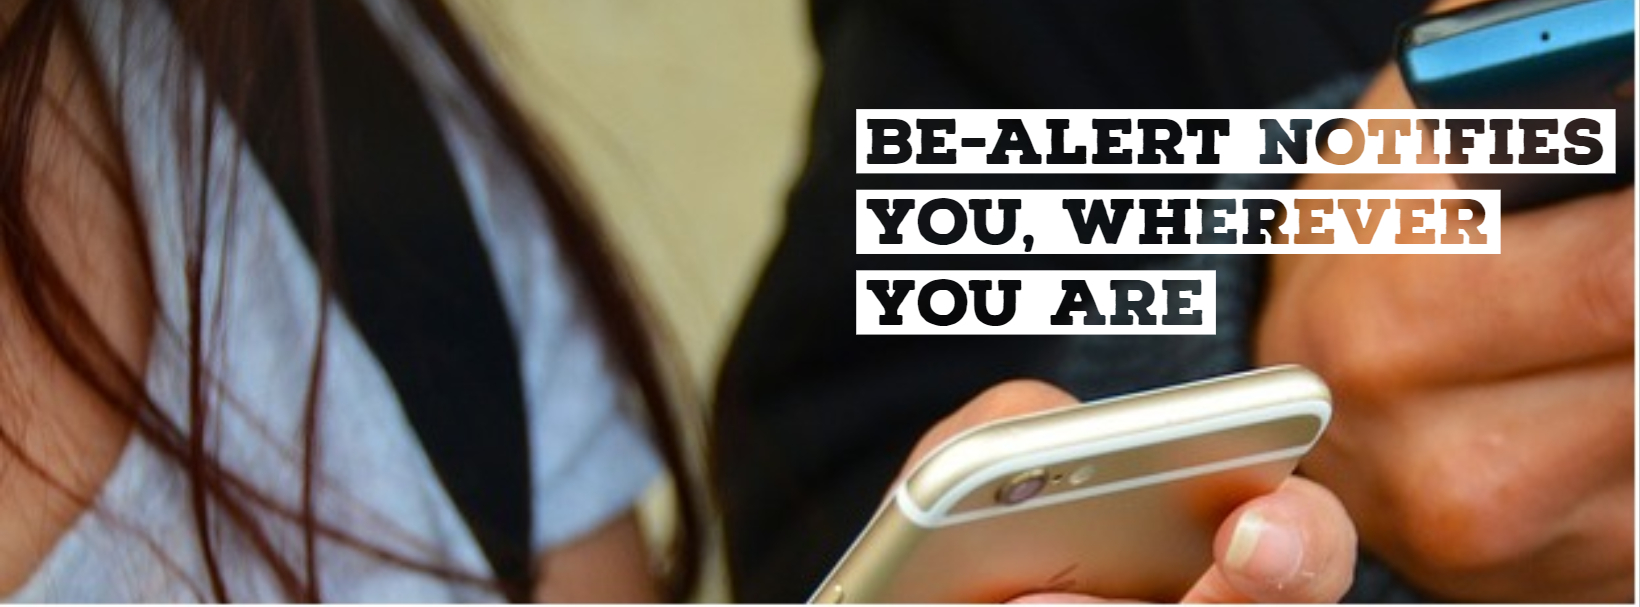 BE-Alert notifies you, wherever you are